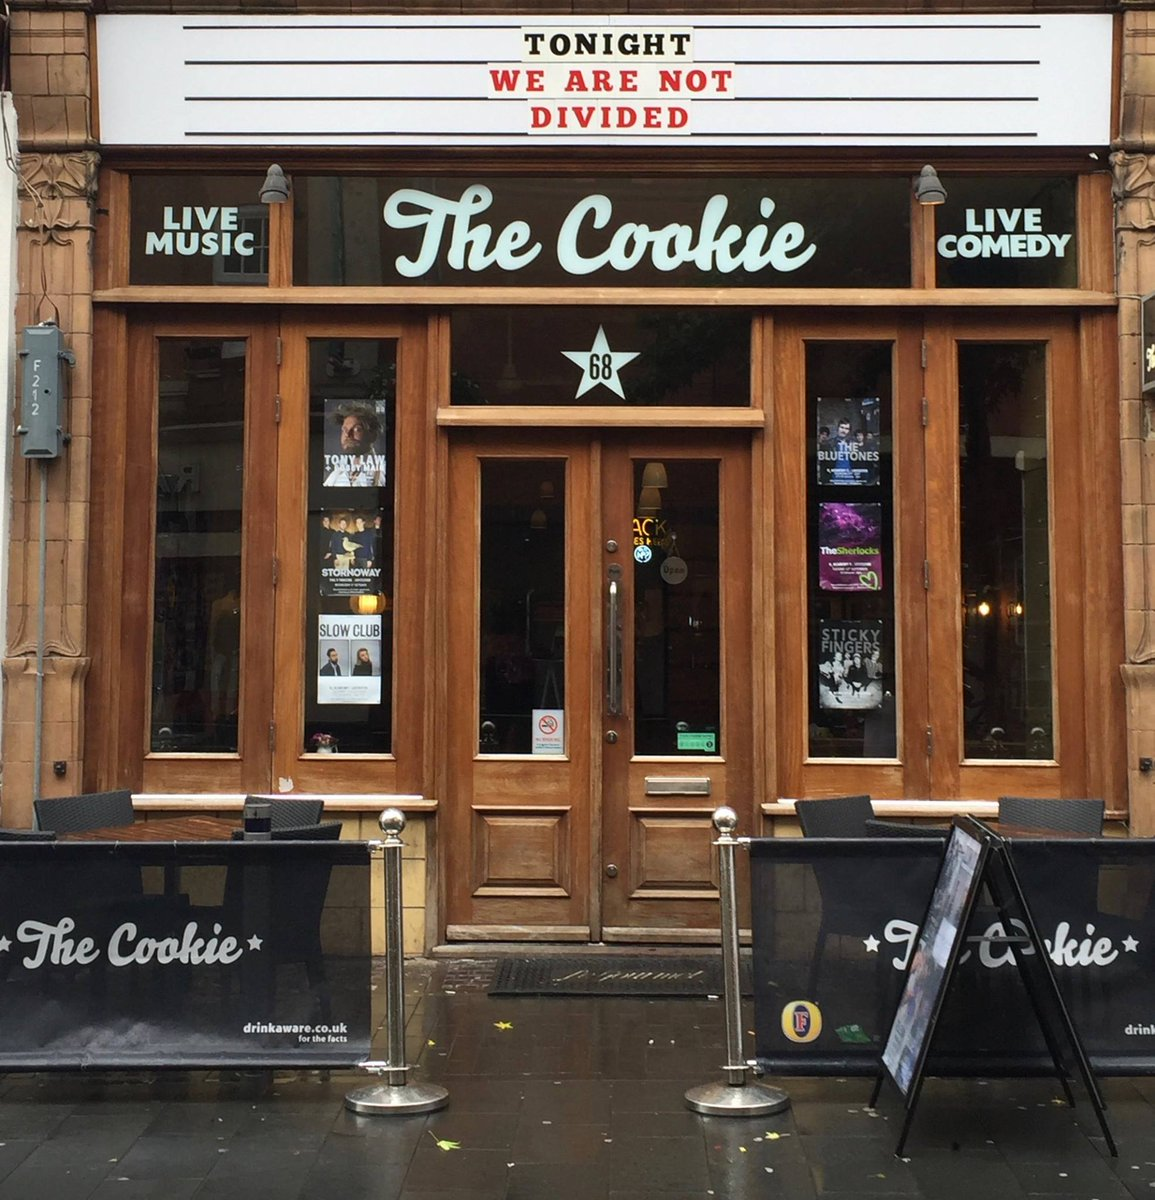 We just want to say all are welcome here at The Cookie no matter age, sex, race or sexual orientation #UnitedWeStand https://t.co/3Kb1D2mOHH